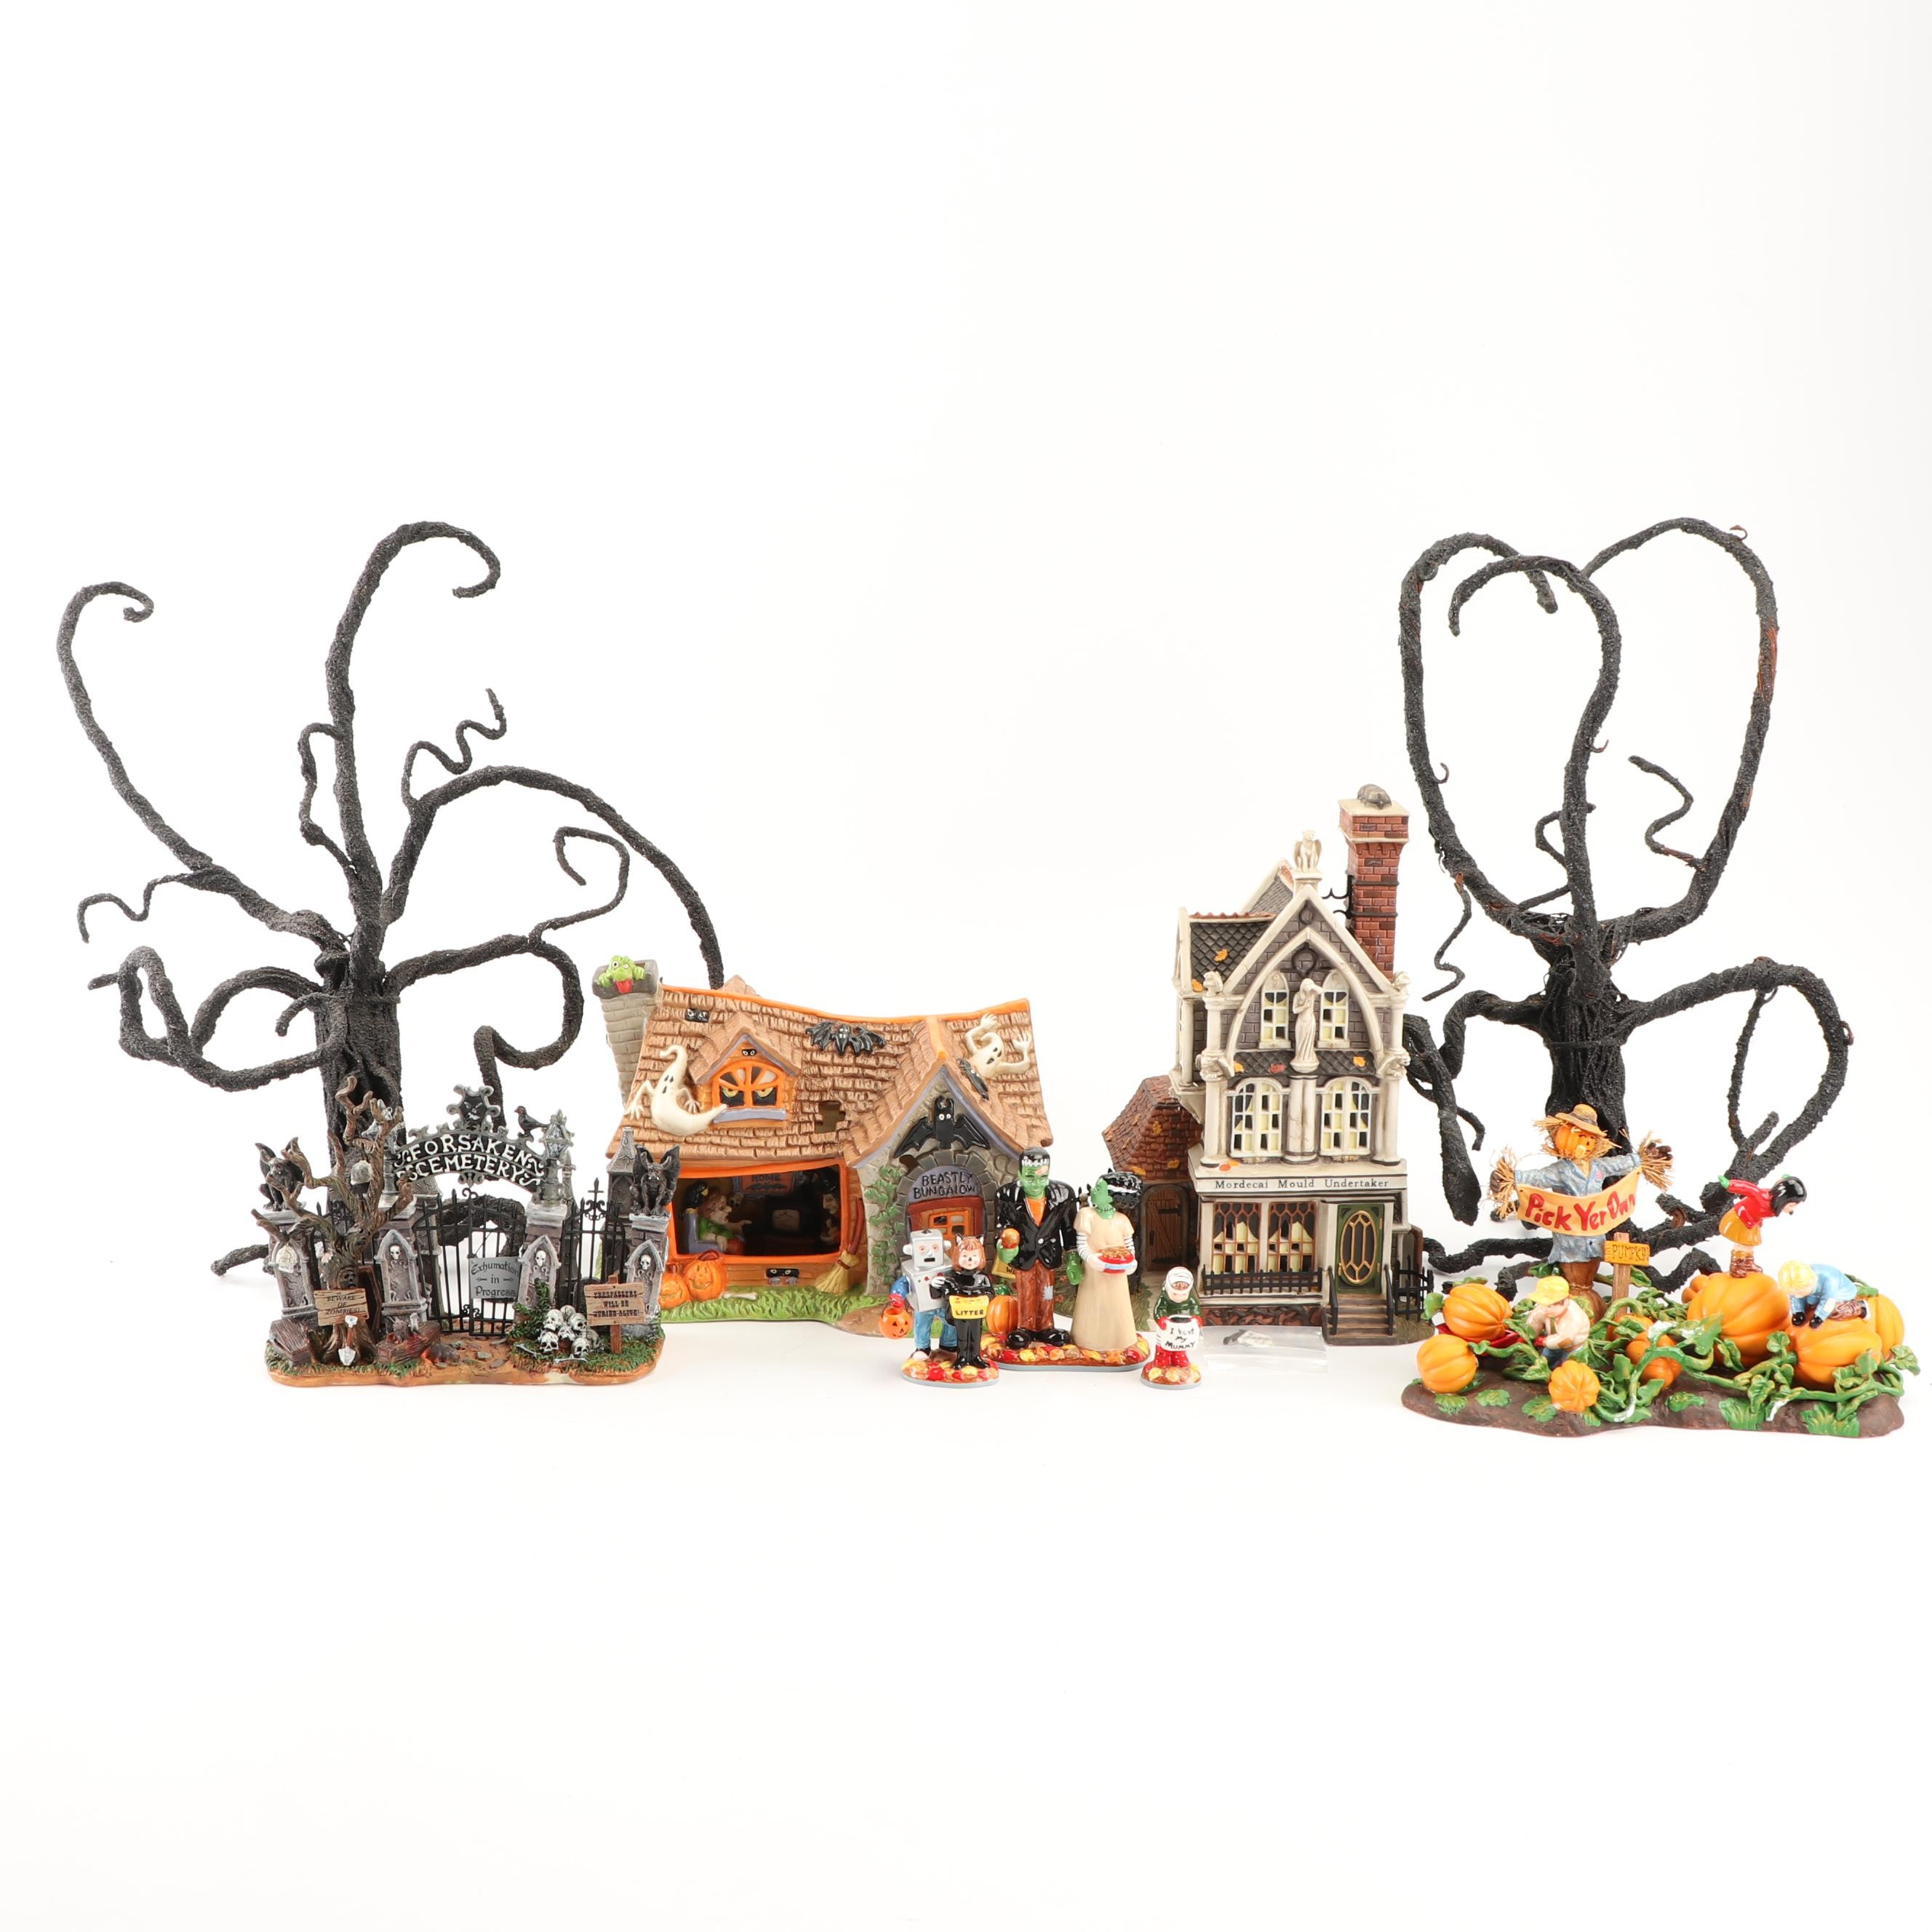 Department 56 and Lemax Spooky Town Village Houses and Accessories